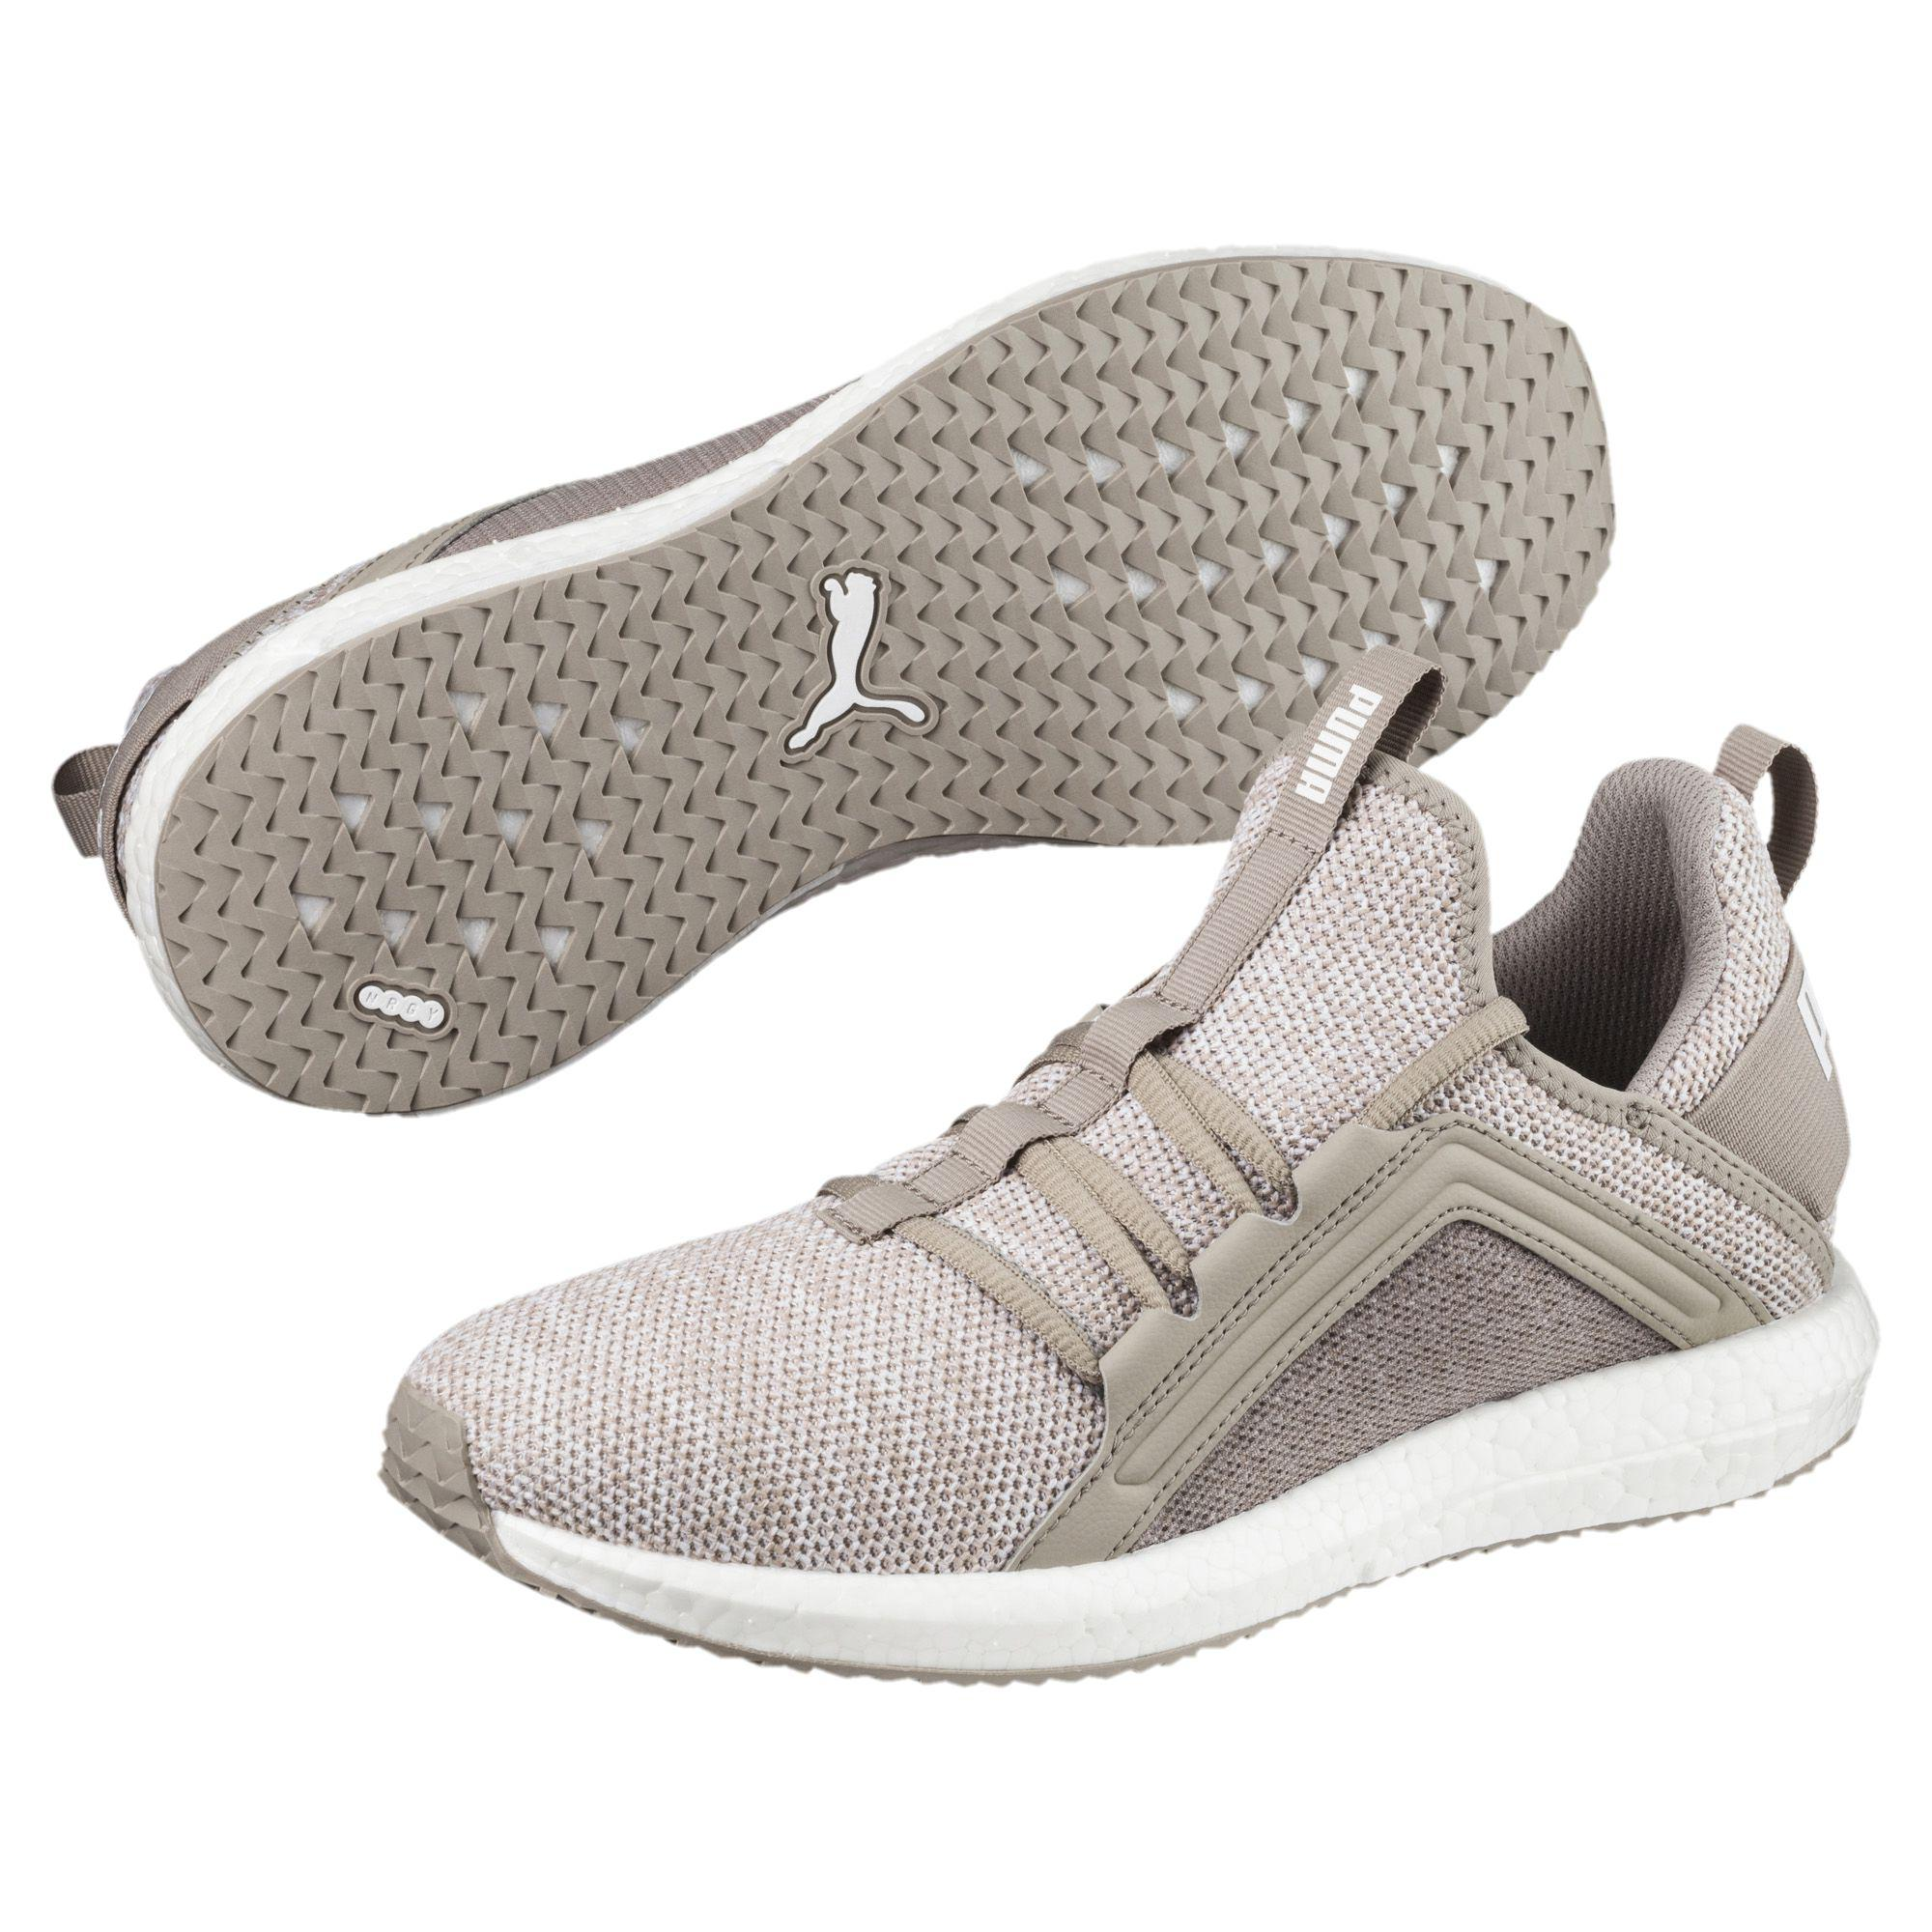 Nude Mega Energy Knit - Women's cheap sale for nice WH4hNeoI